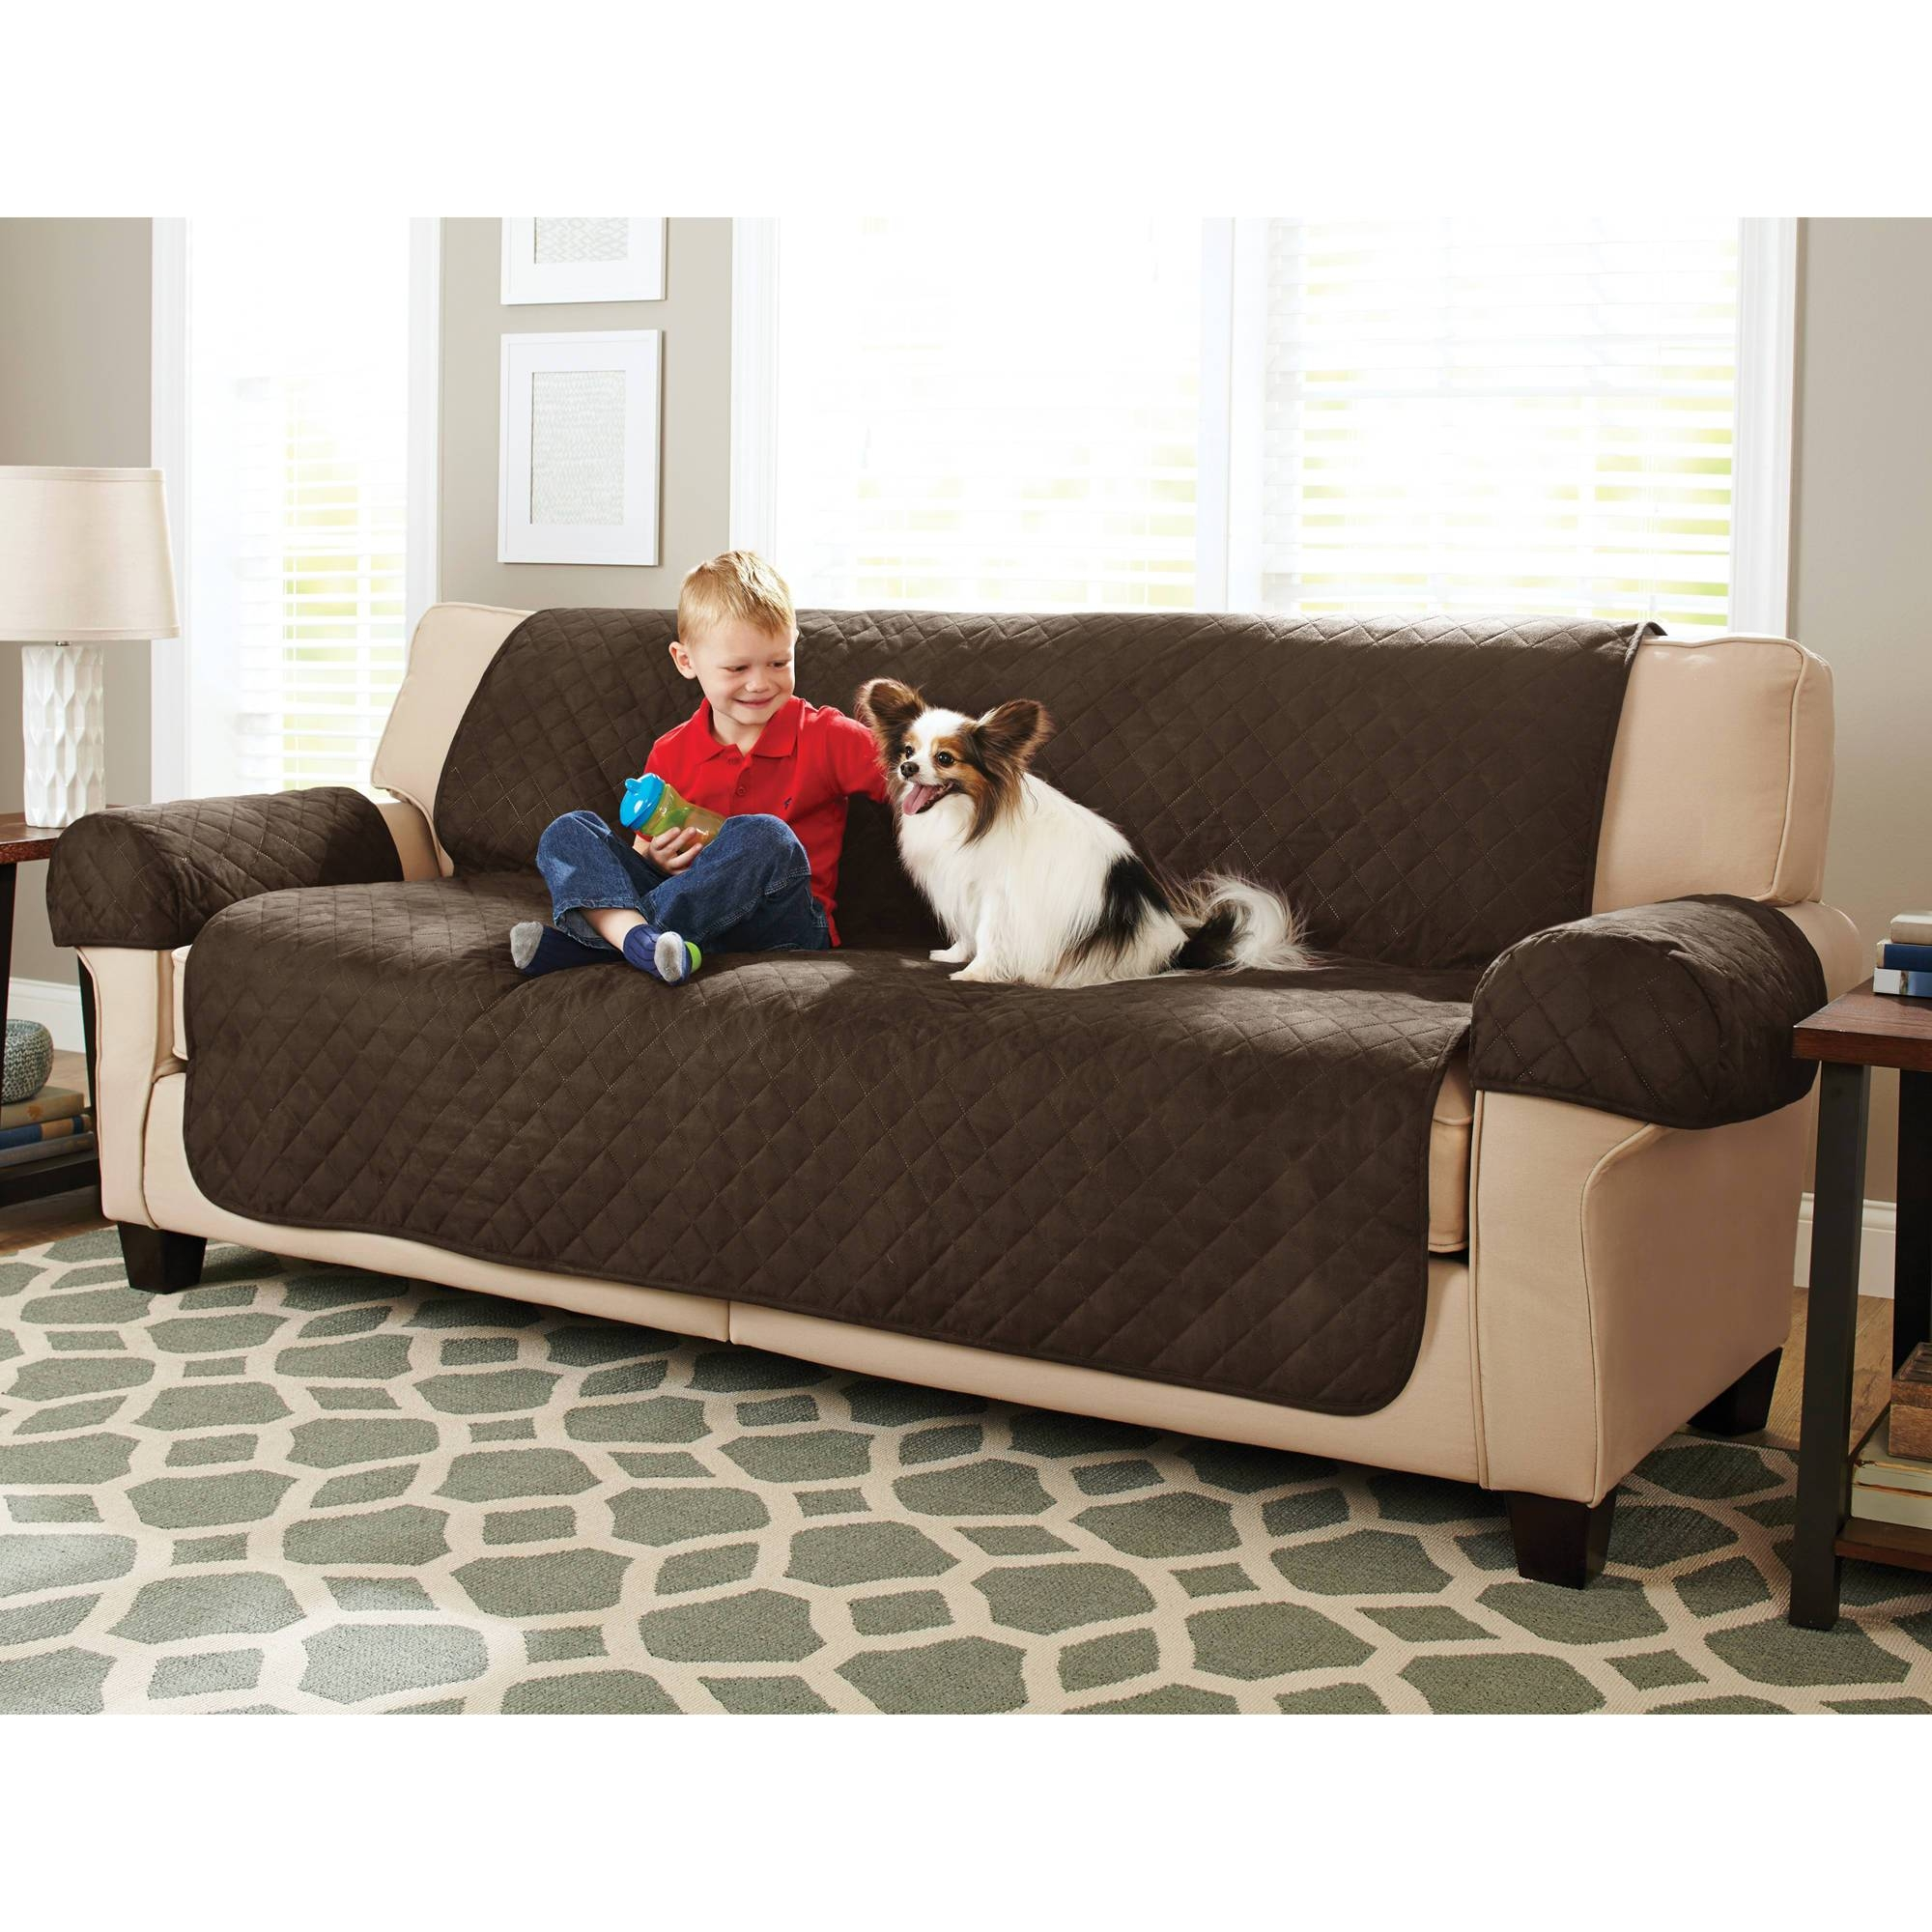 Maytex Stretch 2-Piece Sofa Slipcover - Walmart with regard to Black Slipcovers For Sofas (Image 21 of 30)